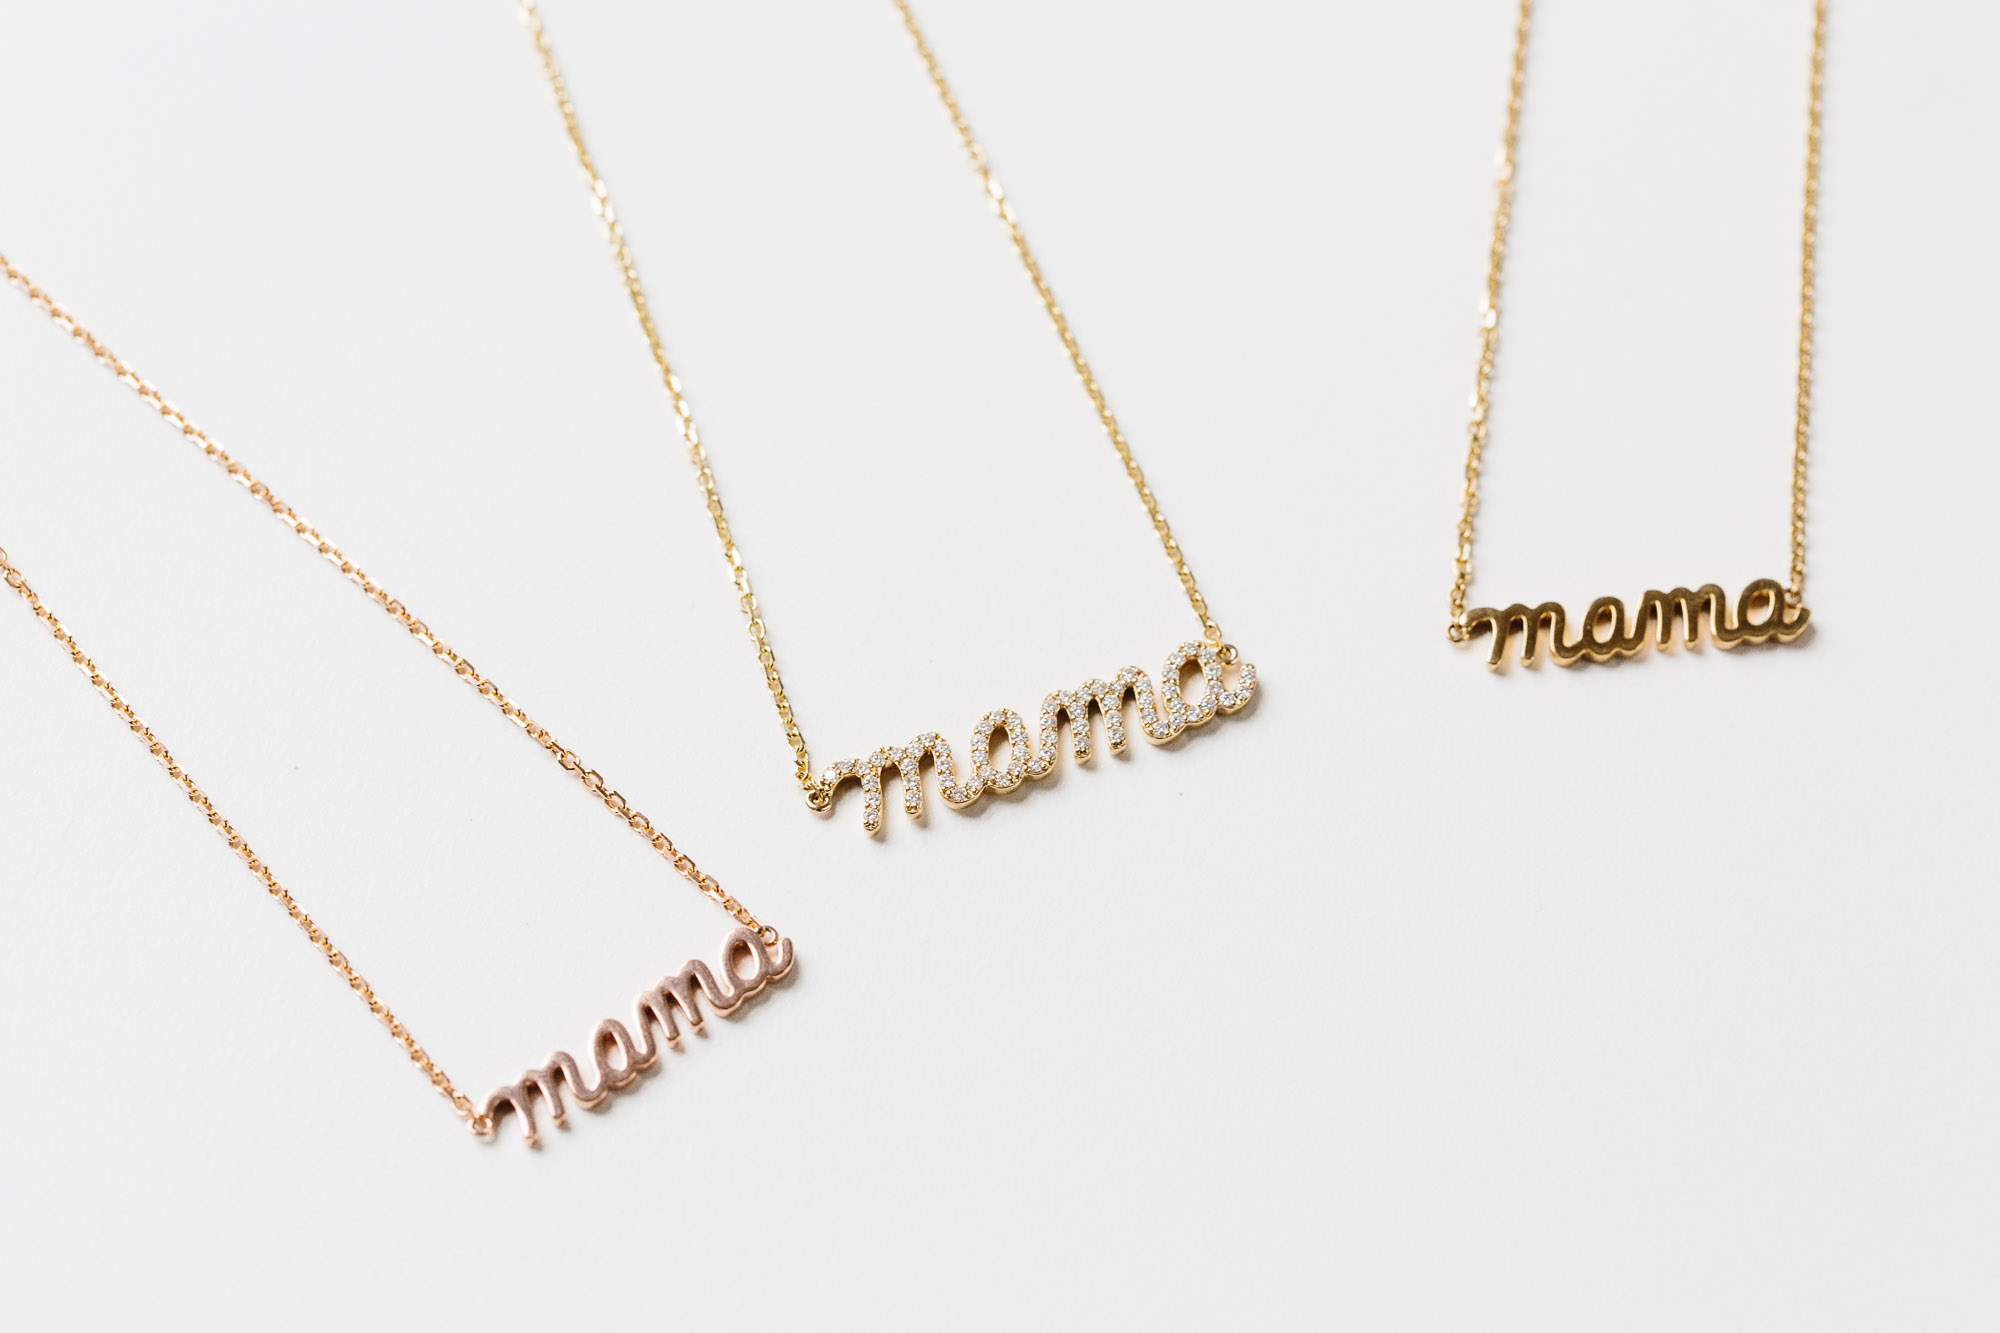 listing necklace gallery christmas fullxfull necklaces meaningful photo il mother jewelry gifts daughter